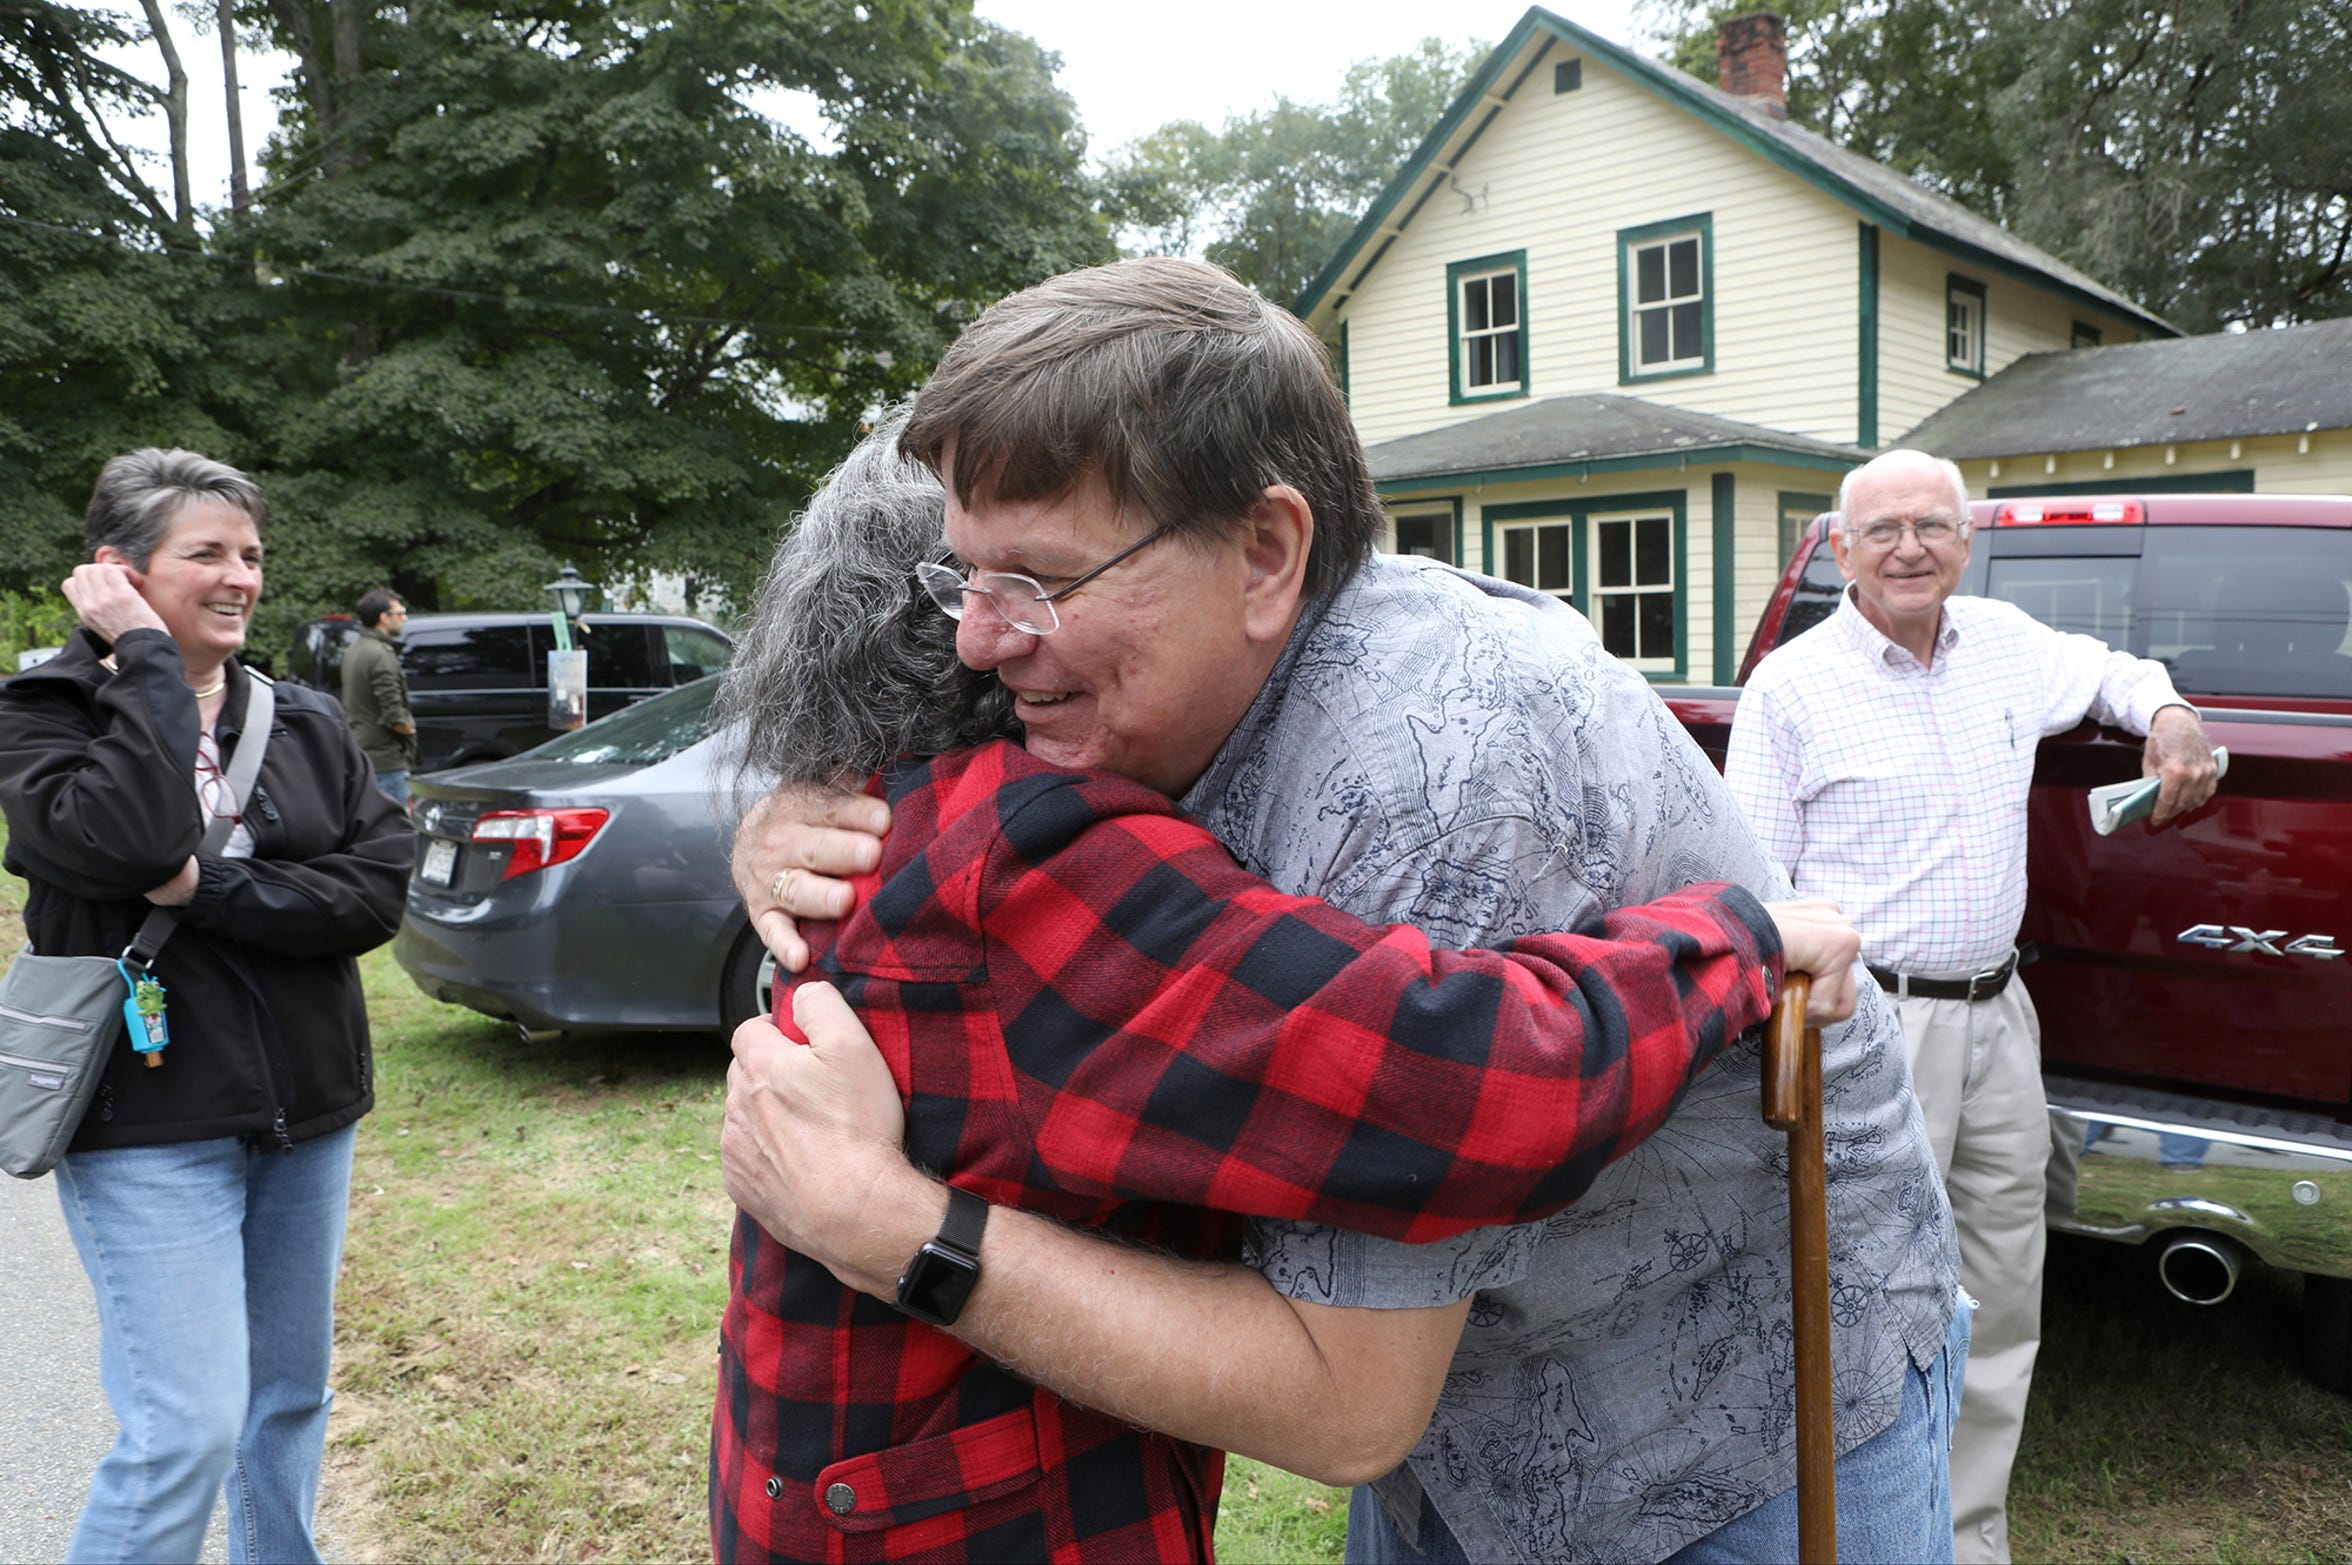 Gary Treible, 60, hugs Ann Dunn in Walpack, where they both used to live. When Treible was growing up in the small Sussex County town, Dunn's son was his best friend. Sunday, September 23, 2018.